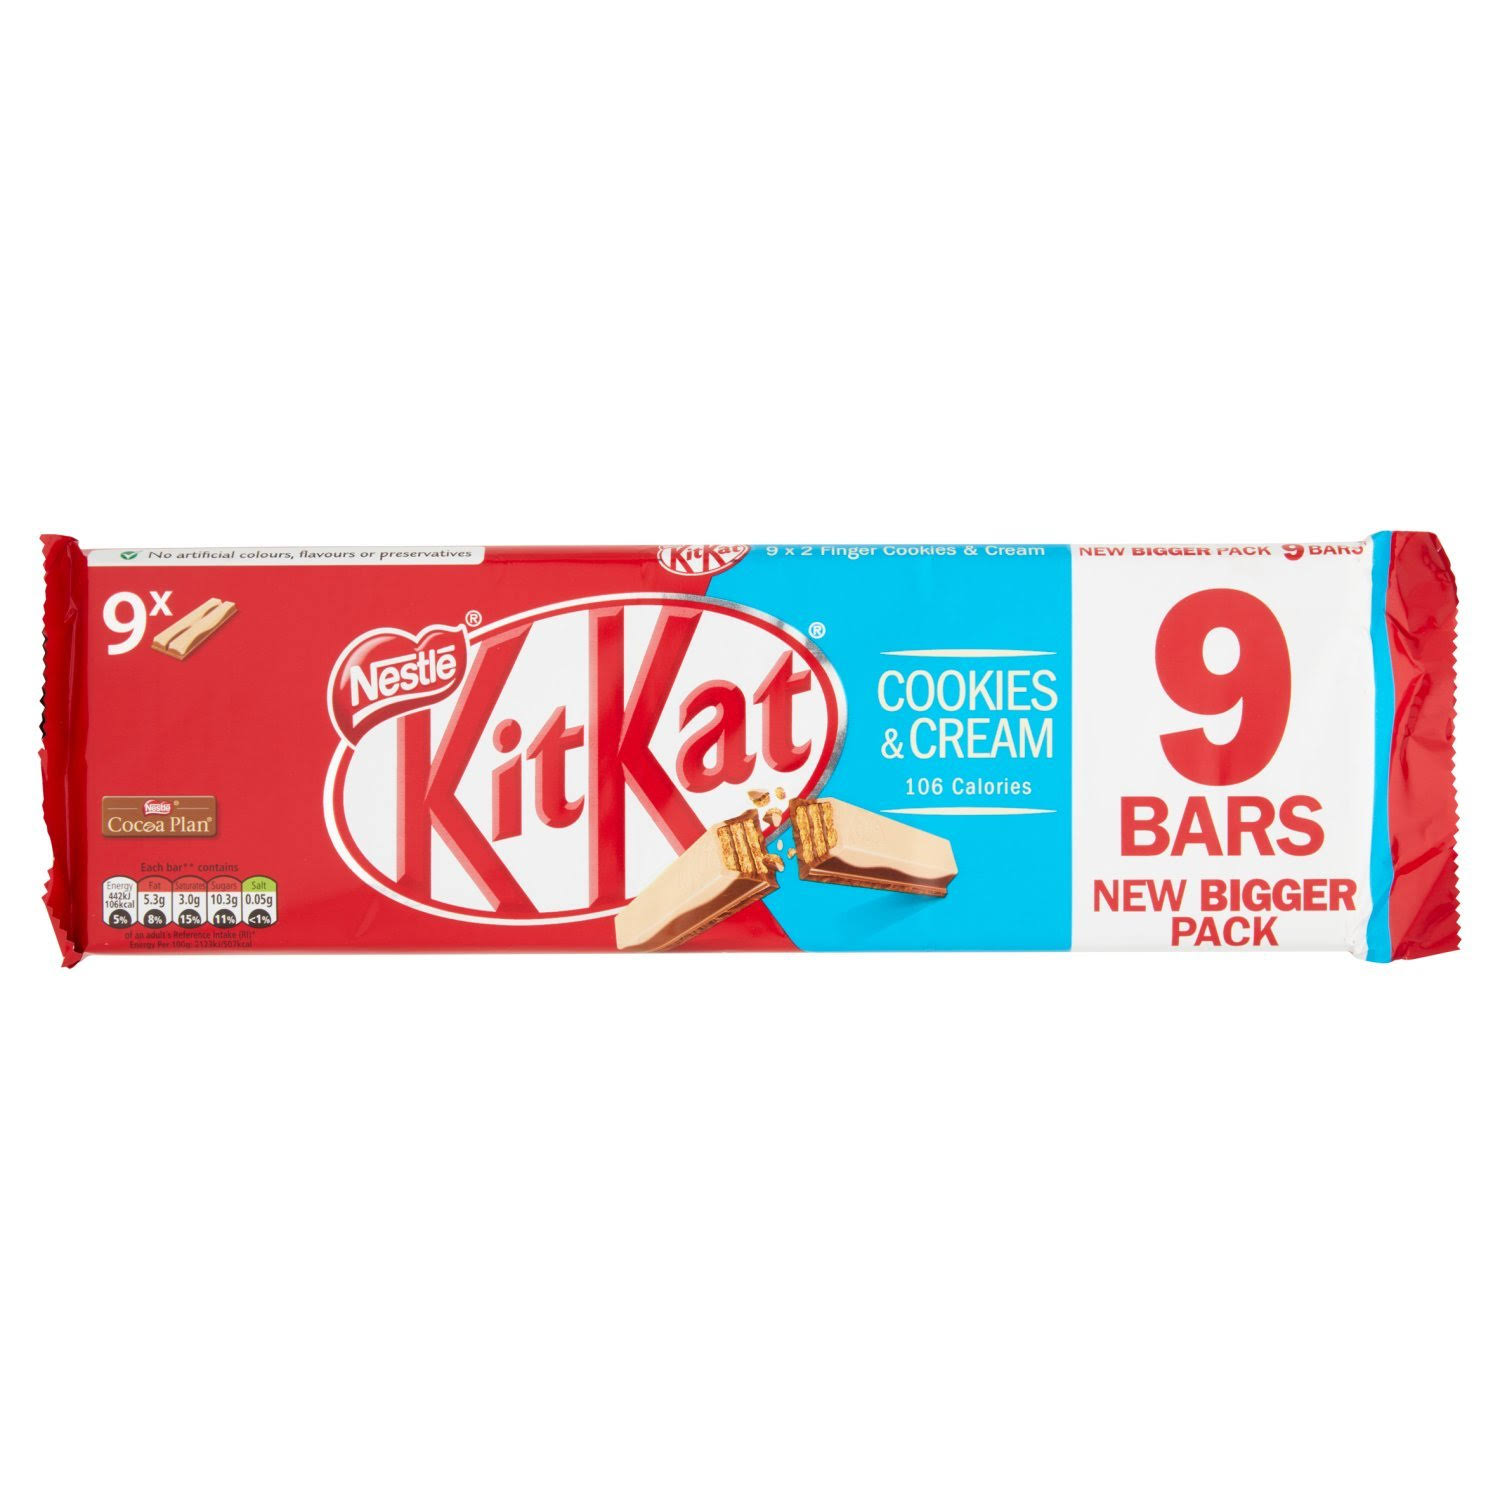 Kit Kat 2 Finger Chocolate Biscuit Bar - Cookies and Cream, 9pcs